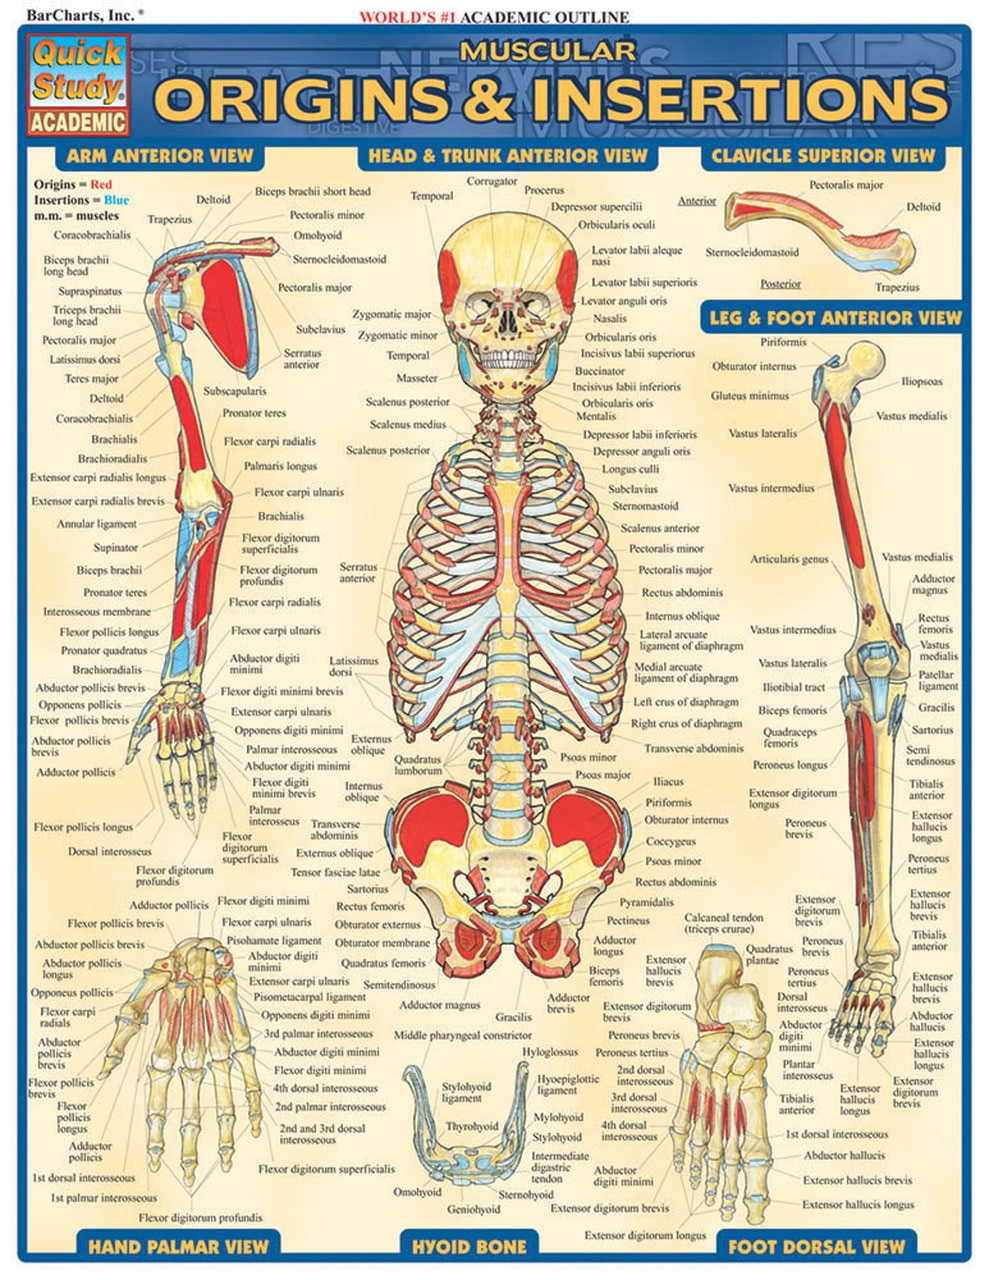 MUSCULAR ORIGINS AND INSERTIONS LAMINATED STUDY GUIDE